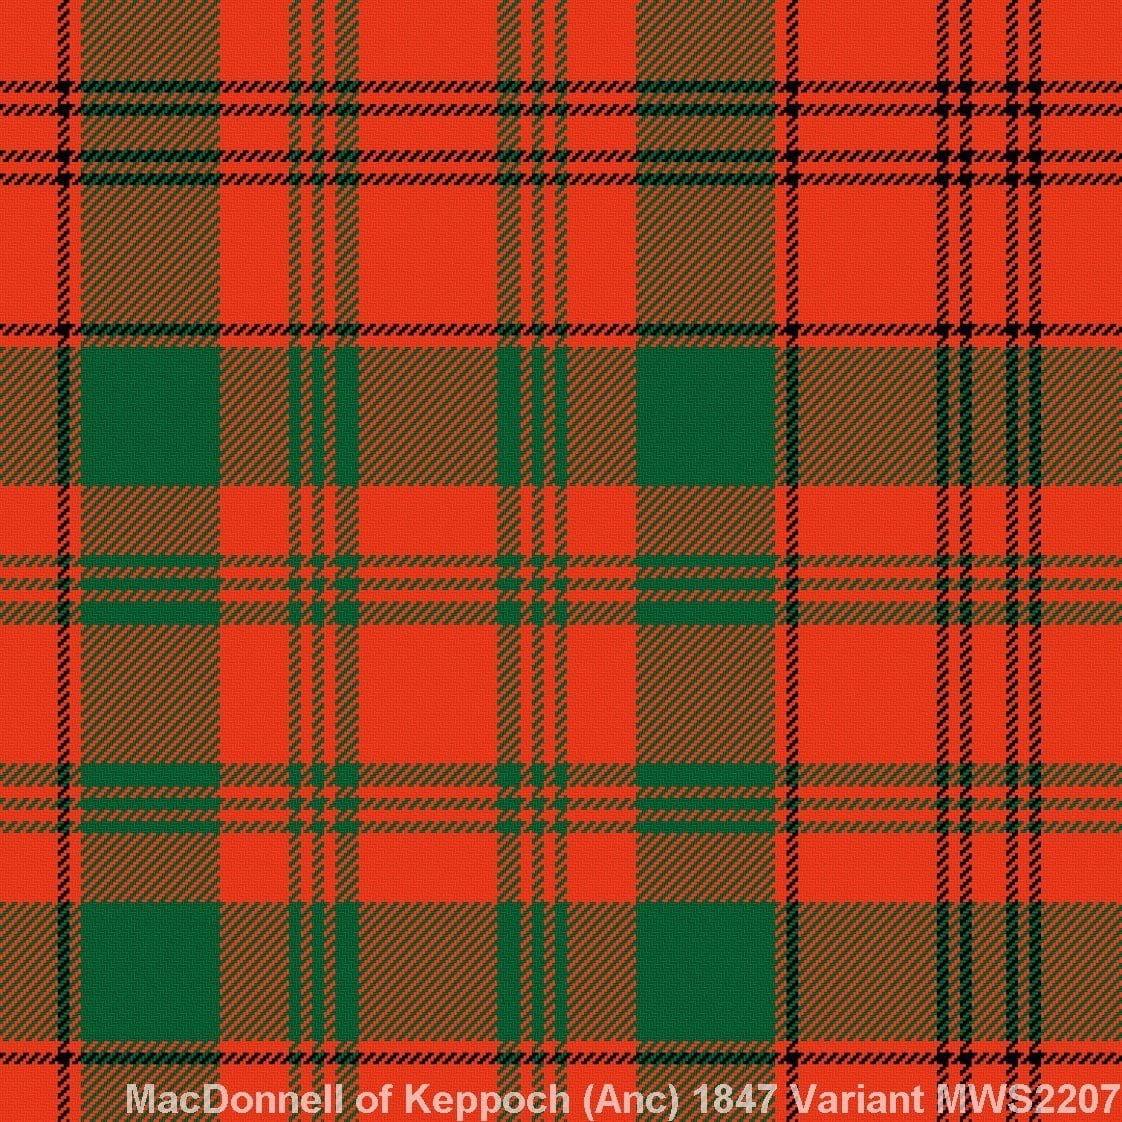 MacDonnell of Keppoch Ancient – 1847 Variant